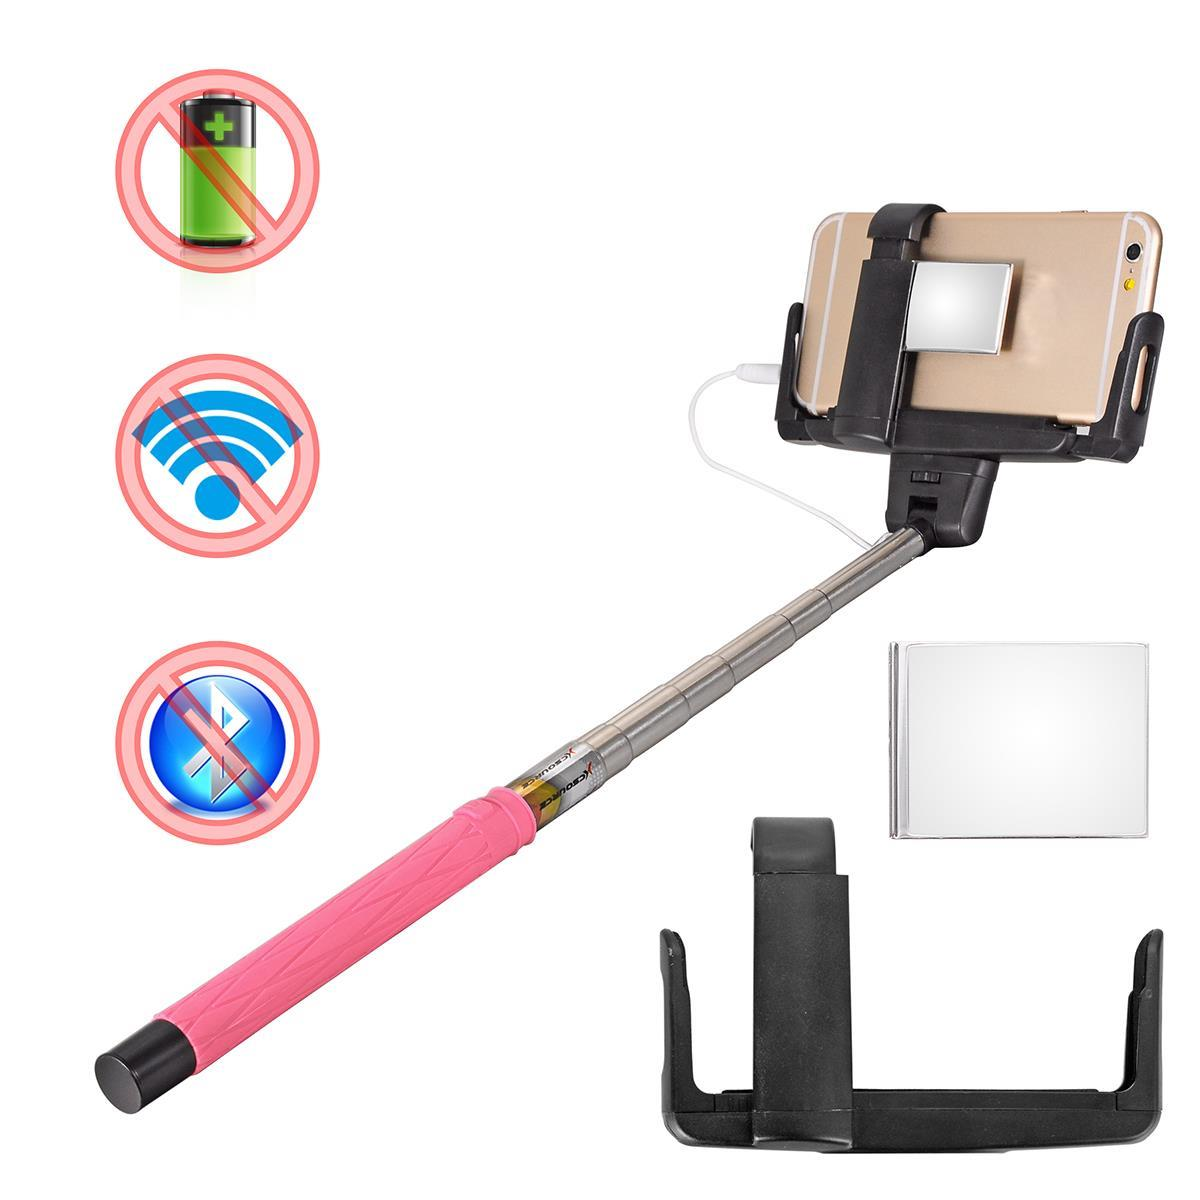 Xcsource Rose Red Flexible Pipe Extendable Handheld Wired Control+Mirror For Samsung for iphone for gopro XC217<br><br>Aliexpress